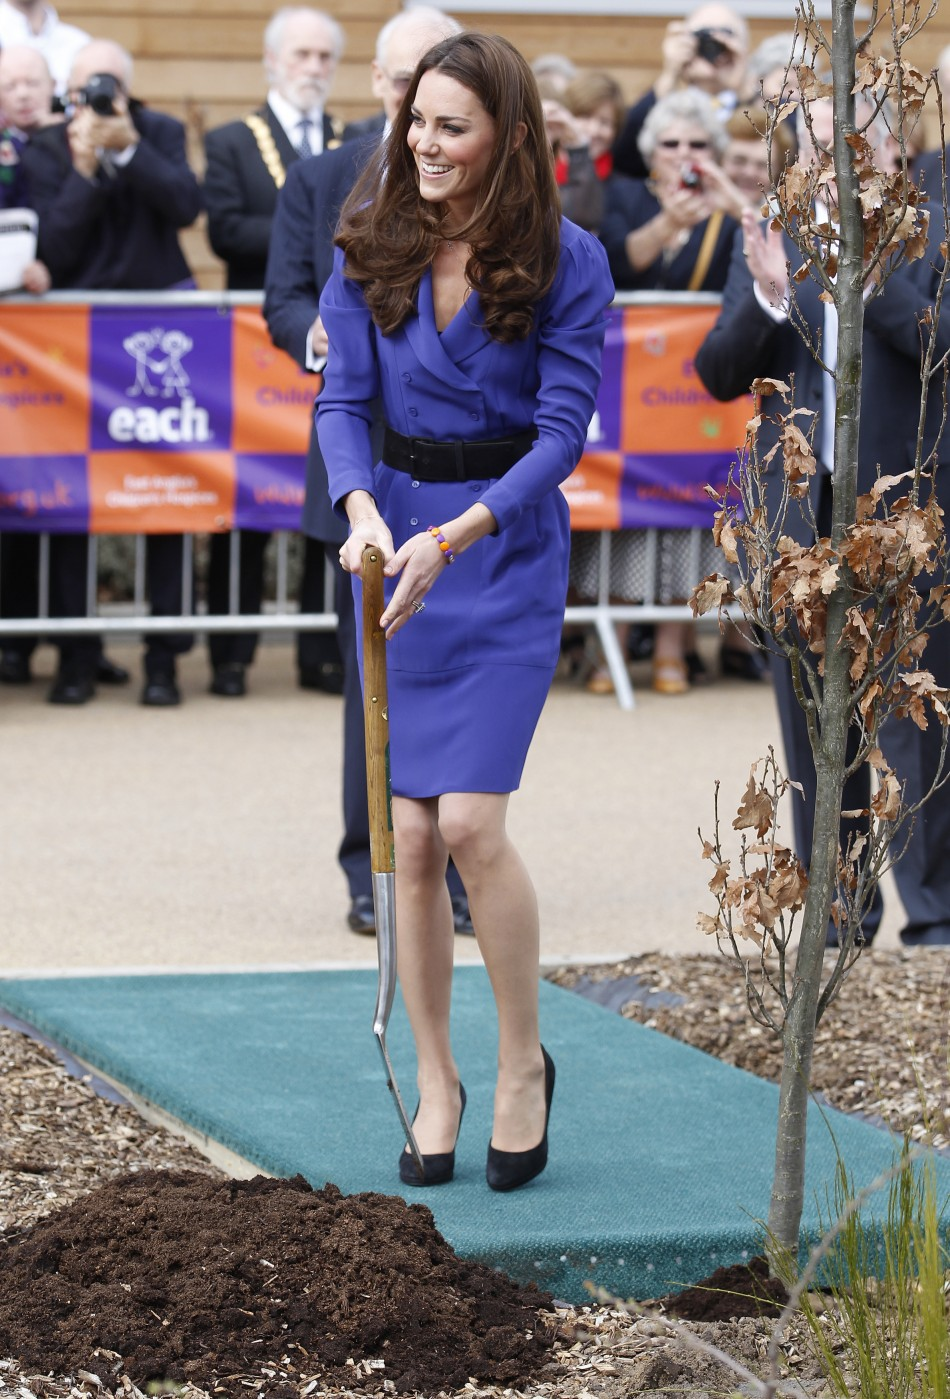 Hands On Shovel From Kate Middleton To Princess Letizia